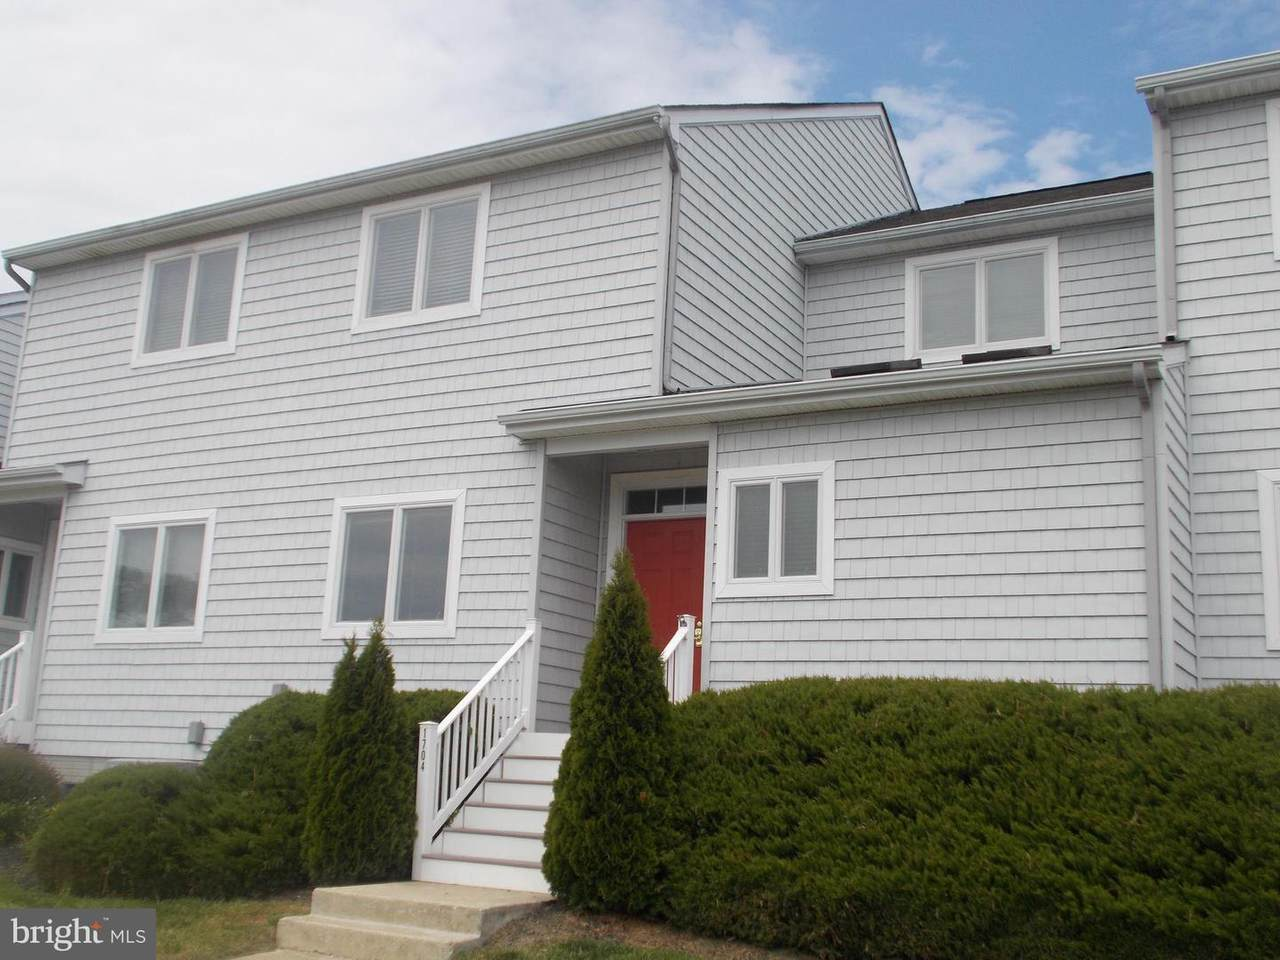 1704 Marion Quimby Drive - Photo 1